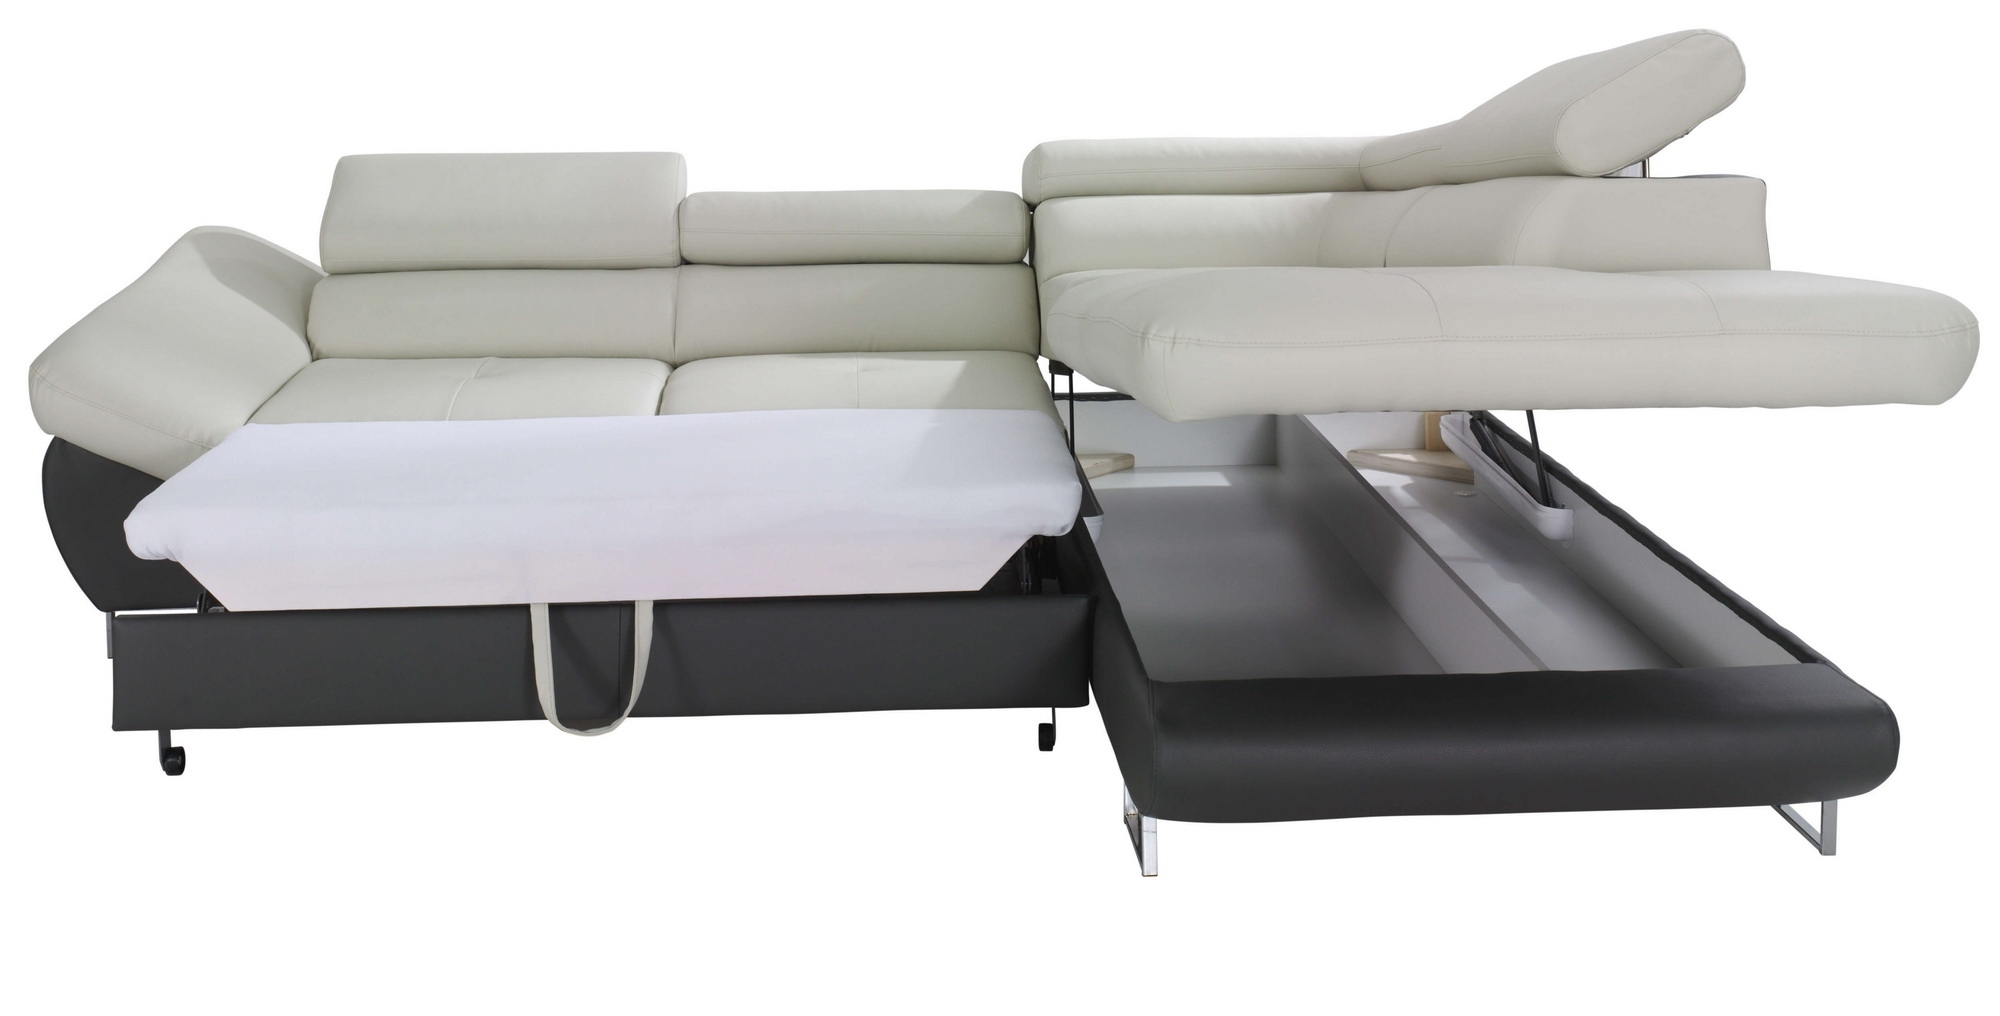 Trendy Sofa Sleepers With Chaise Regarding Fabio Sectional Sofa Sleeper With Storage, Creative Furniture (View 9 of 15)